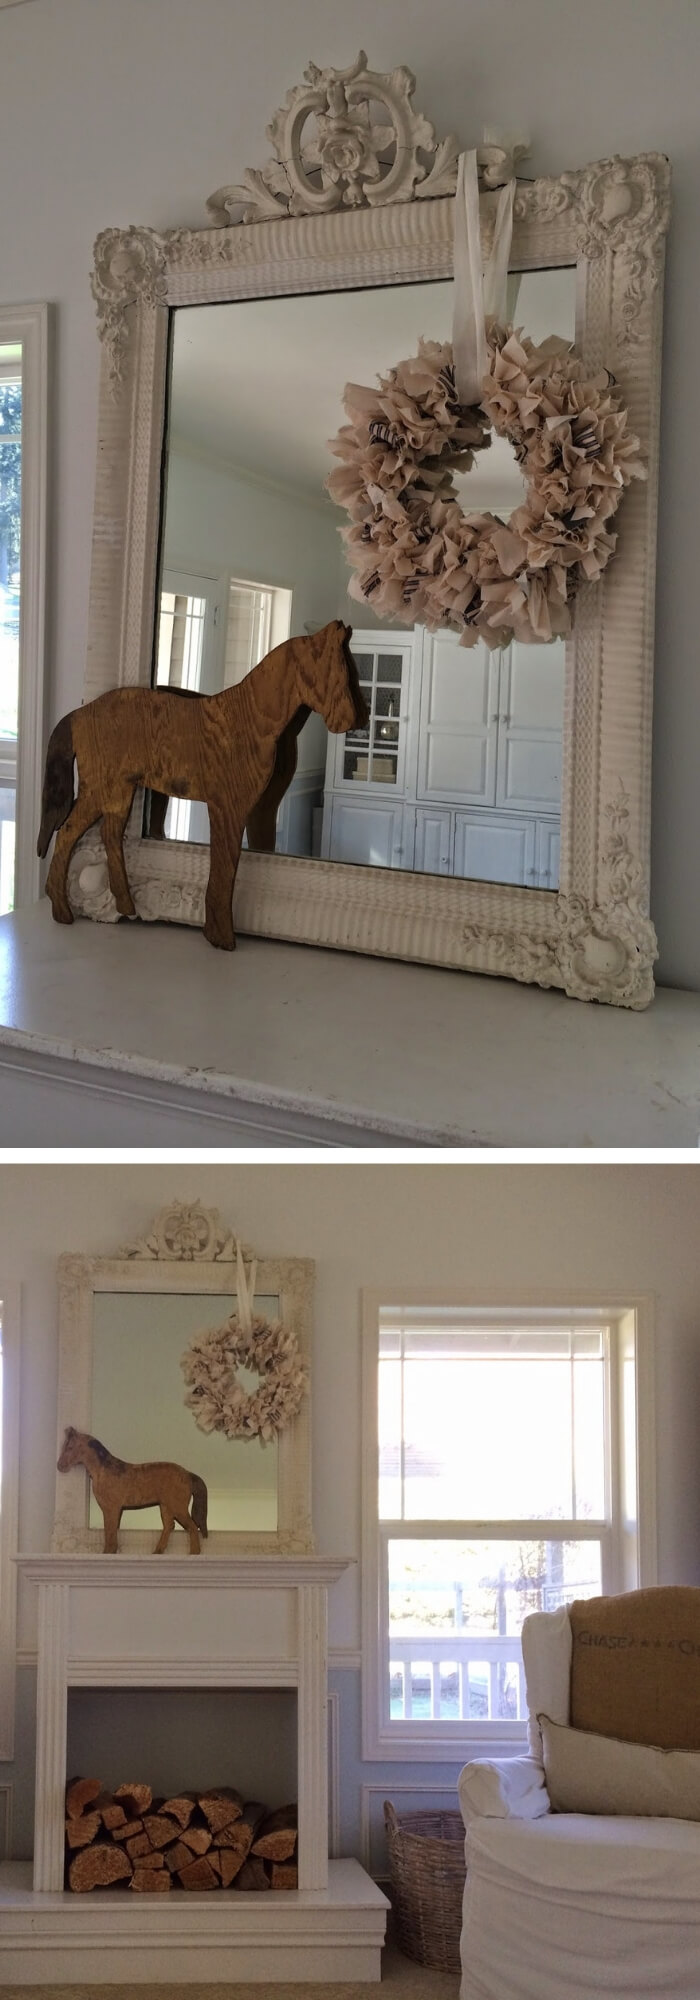 Vintage mantel with a wreath and a wooden horse above a fireplace | Stunning Farmhouse Dining Room Design & Decor Ideas